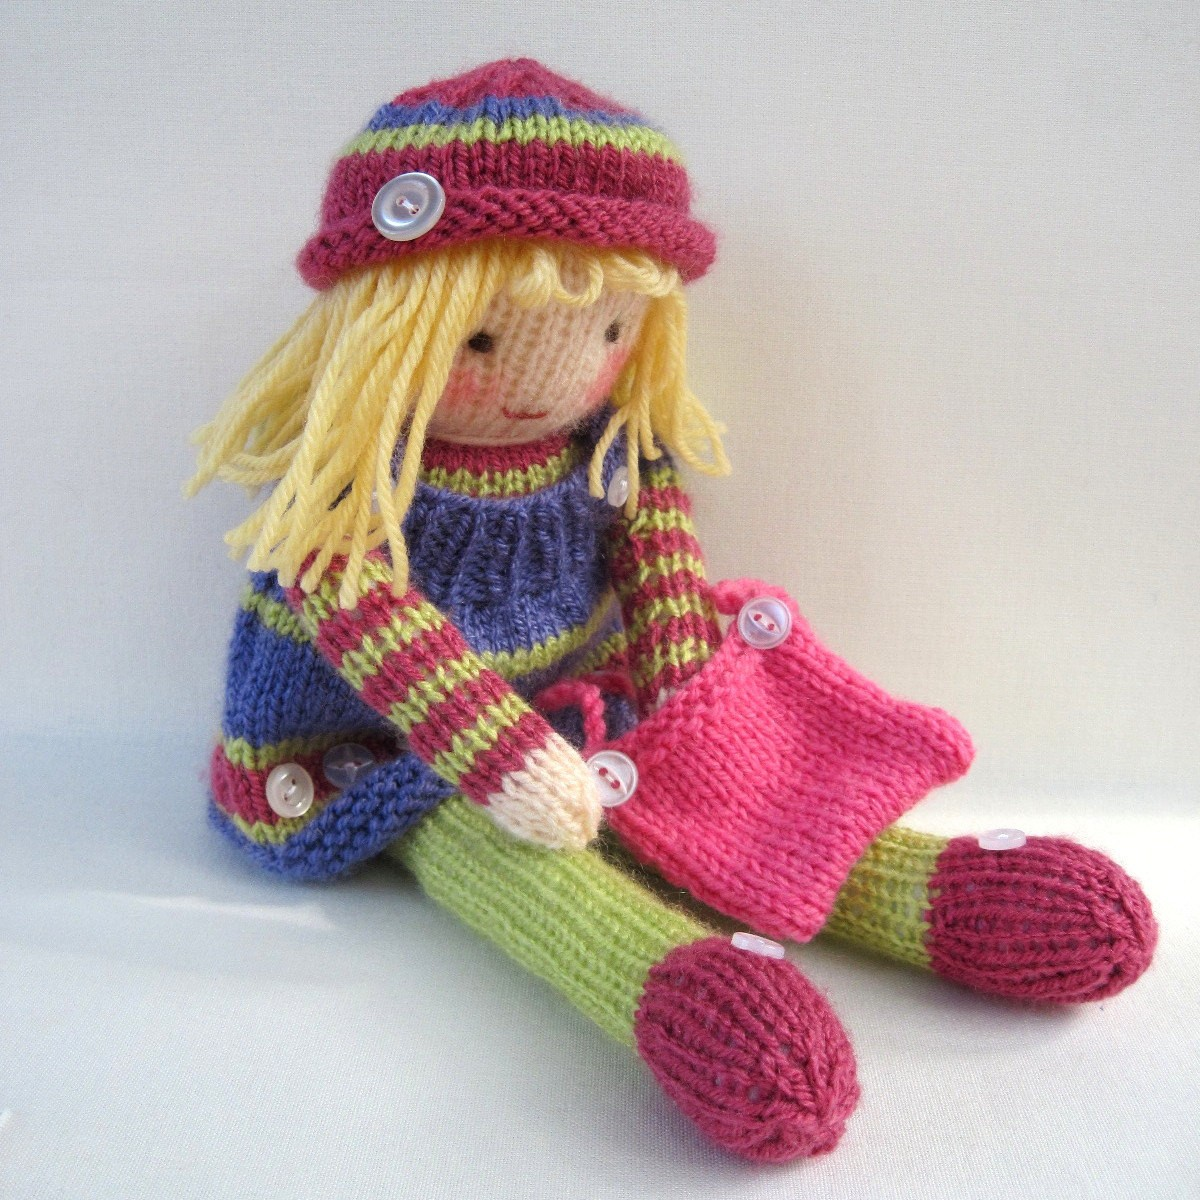 Download free Knitted Toy Patterns Free - ideafile